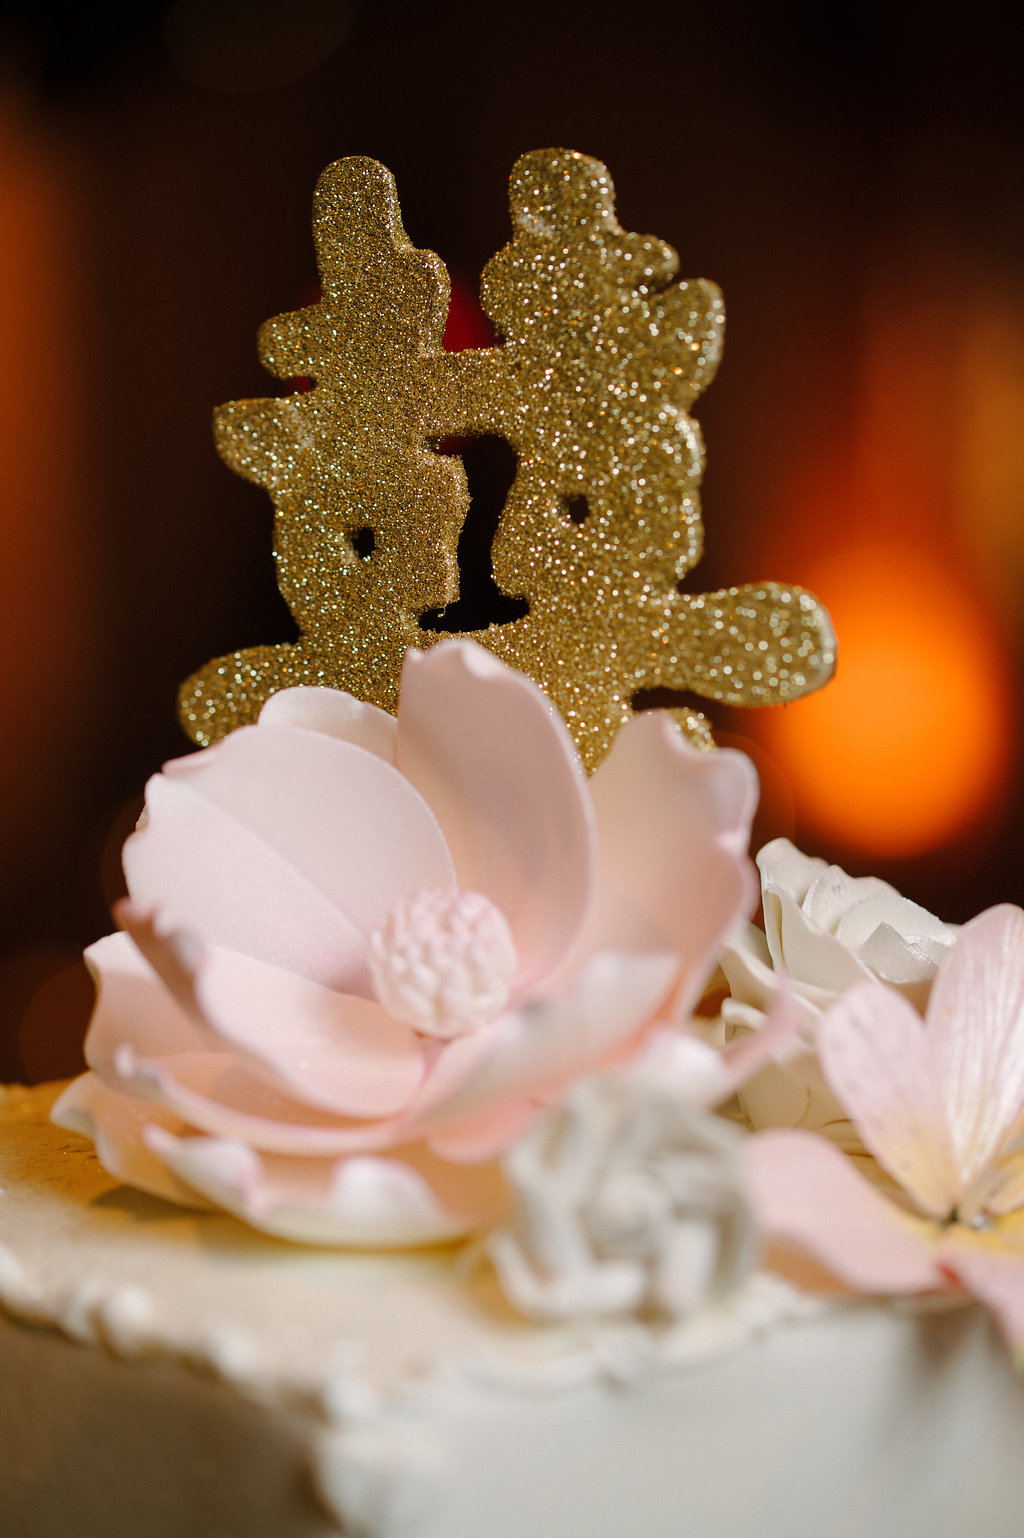 Gold Glitter Chinese Asian Character Wedding Cake Topper with Pink Sugar Flower